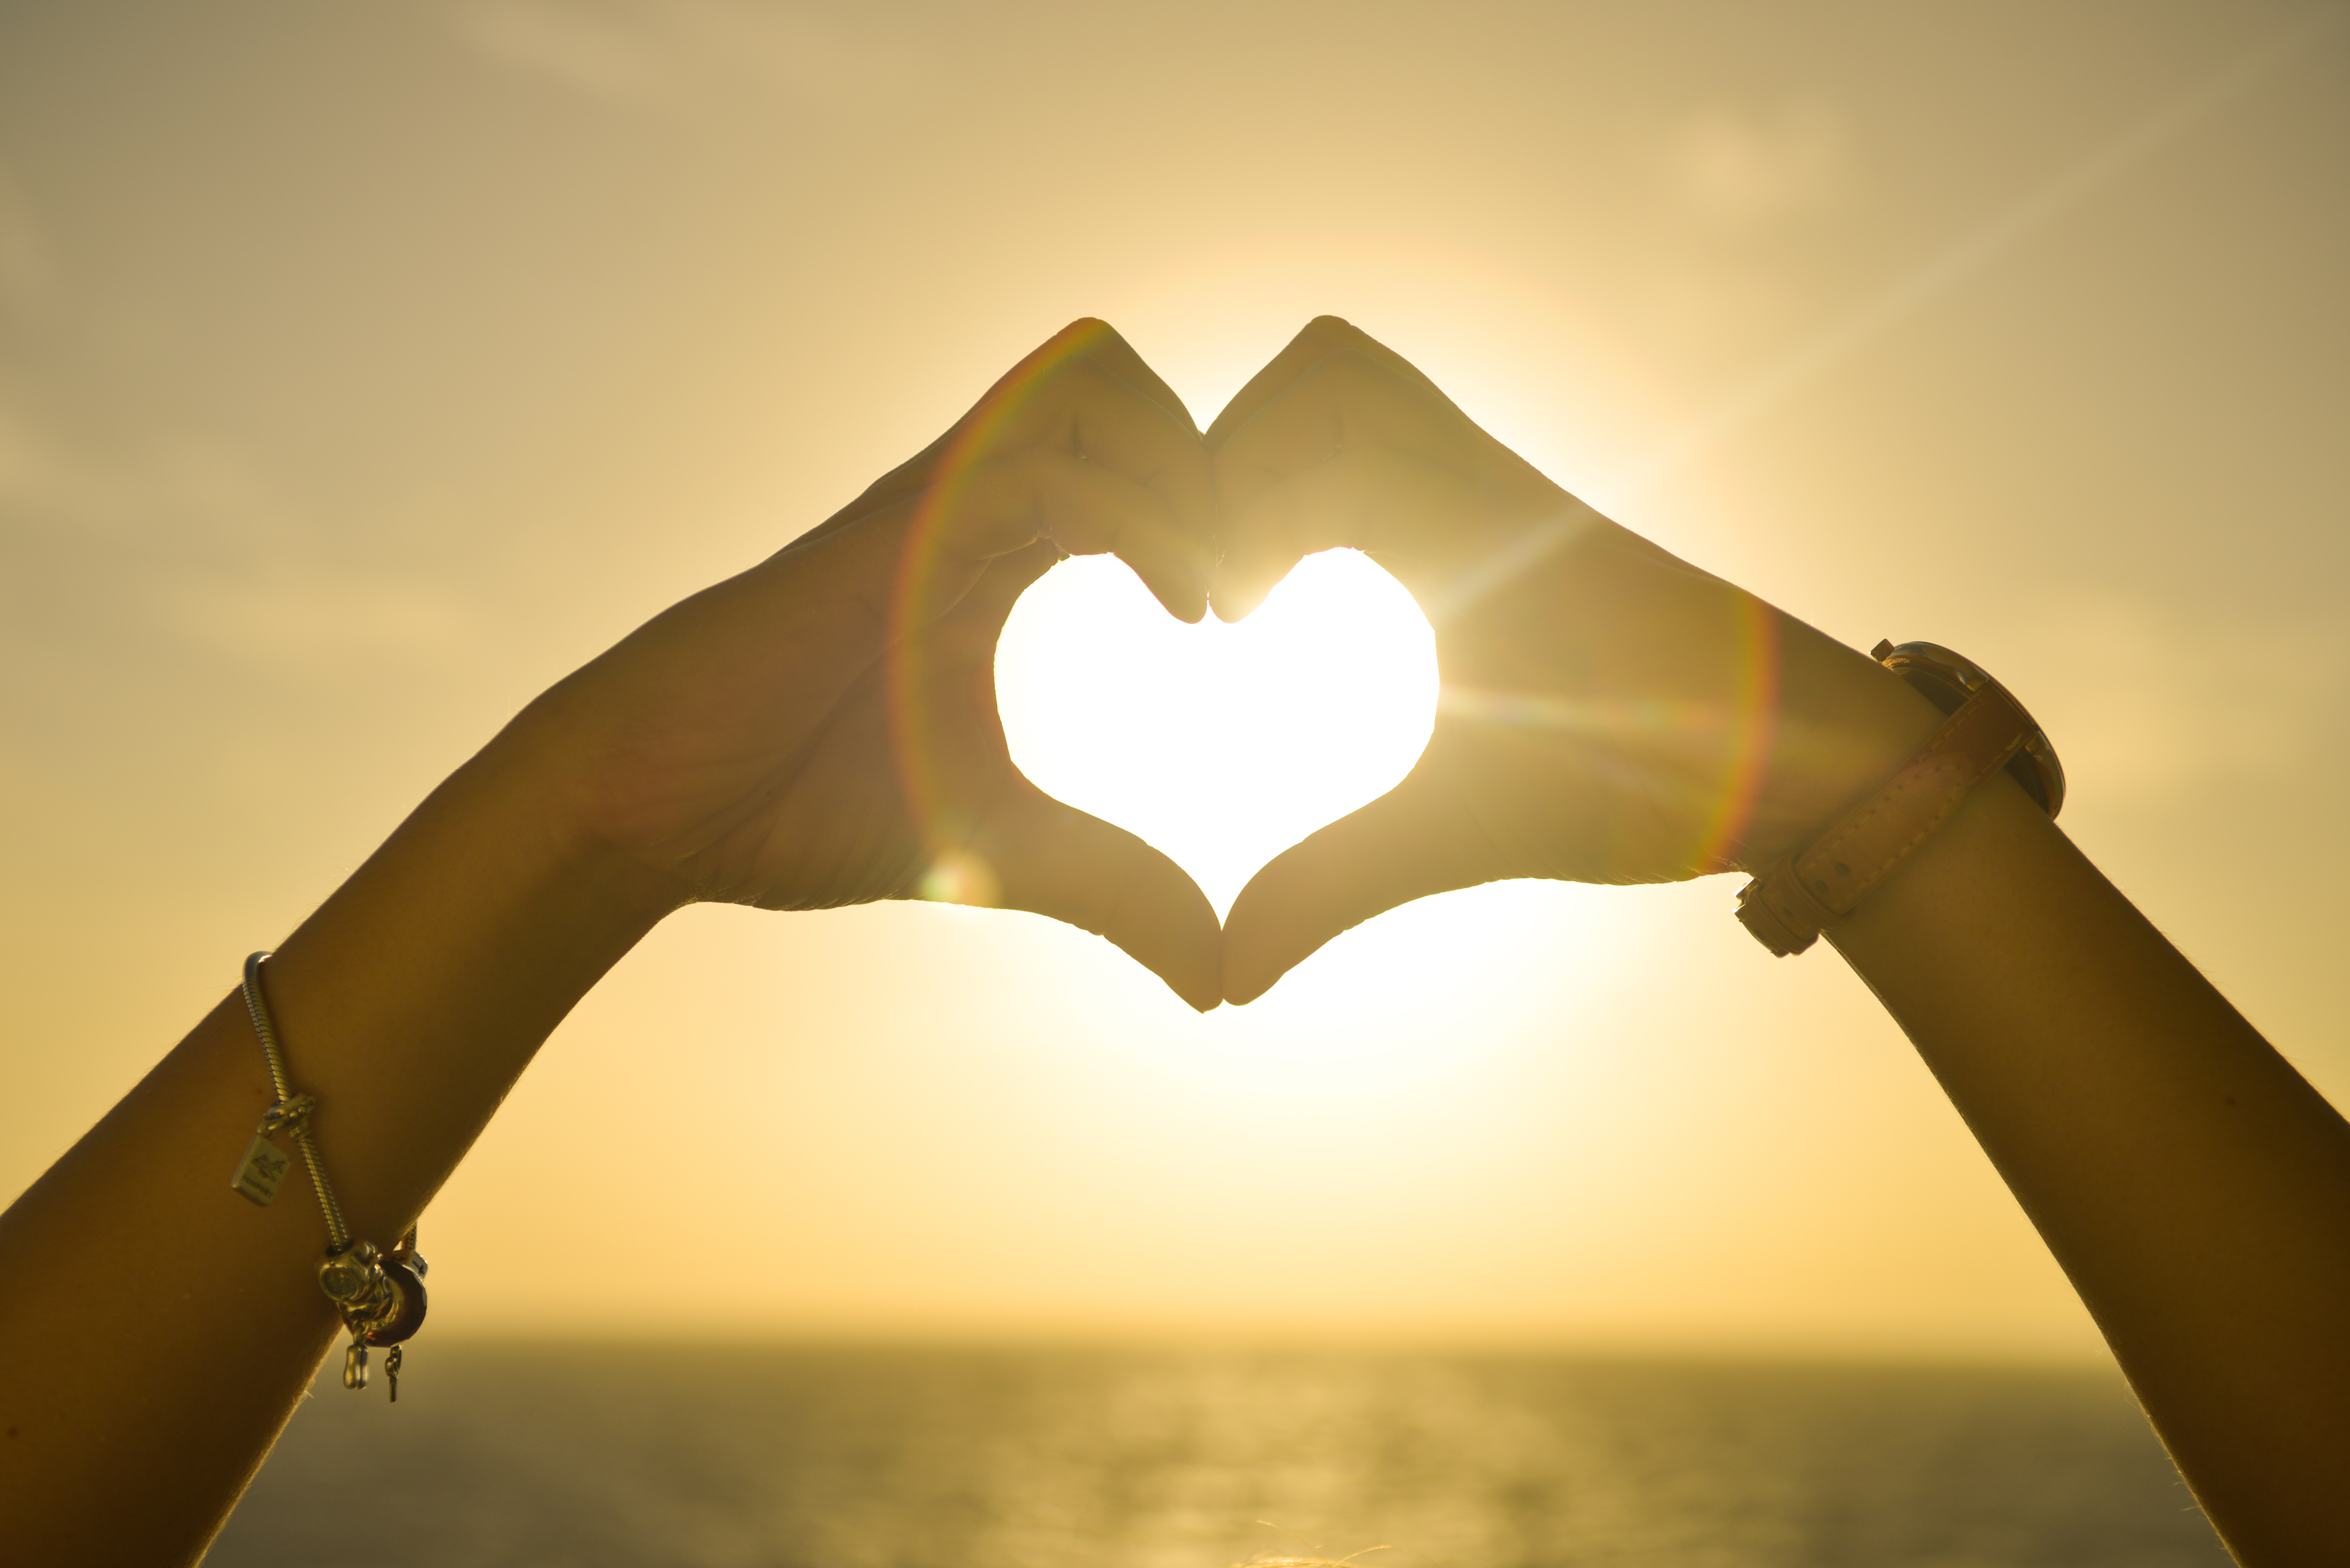 Canva - Two People Forming Heart Sign to Sun